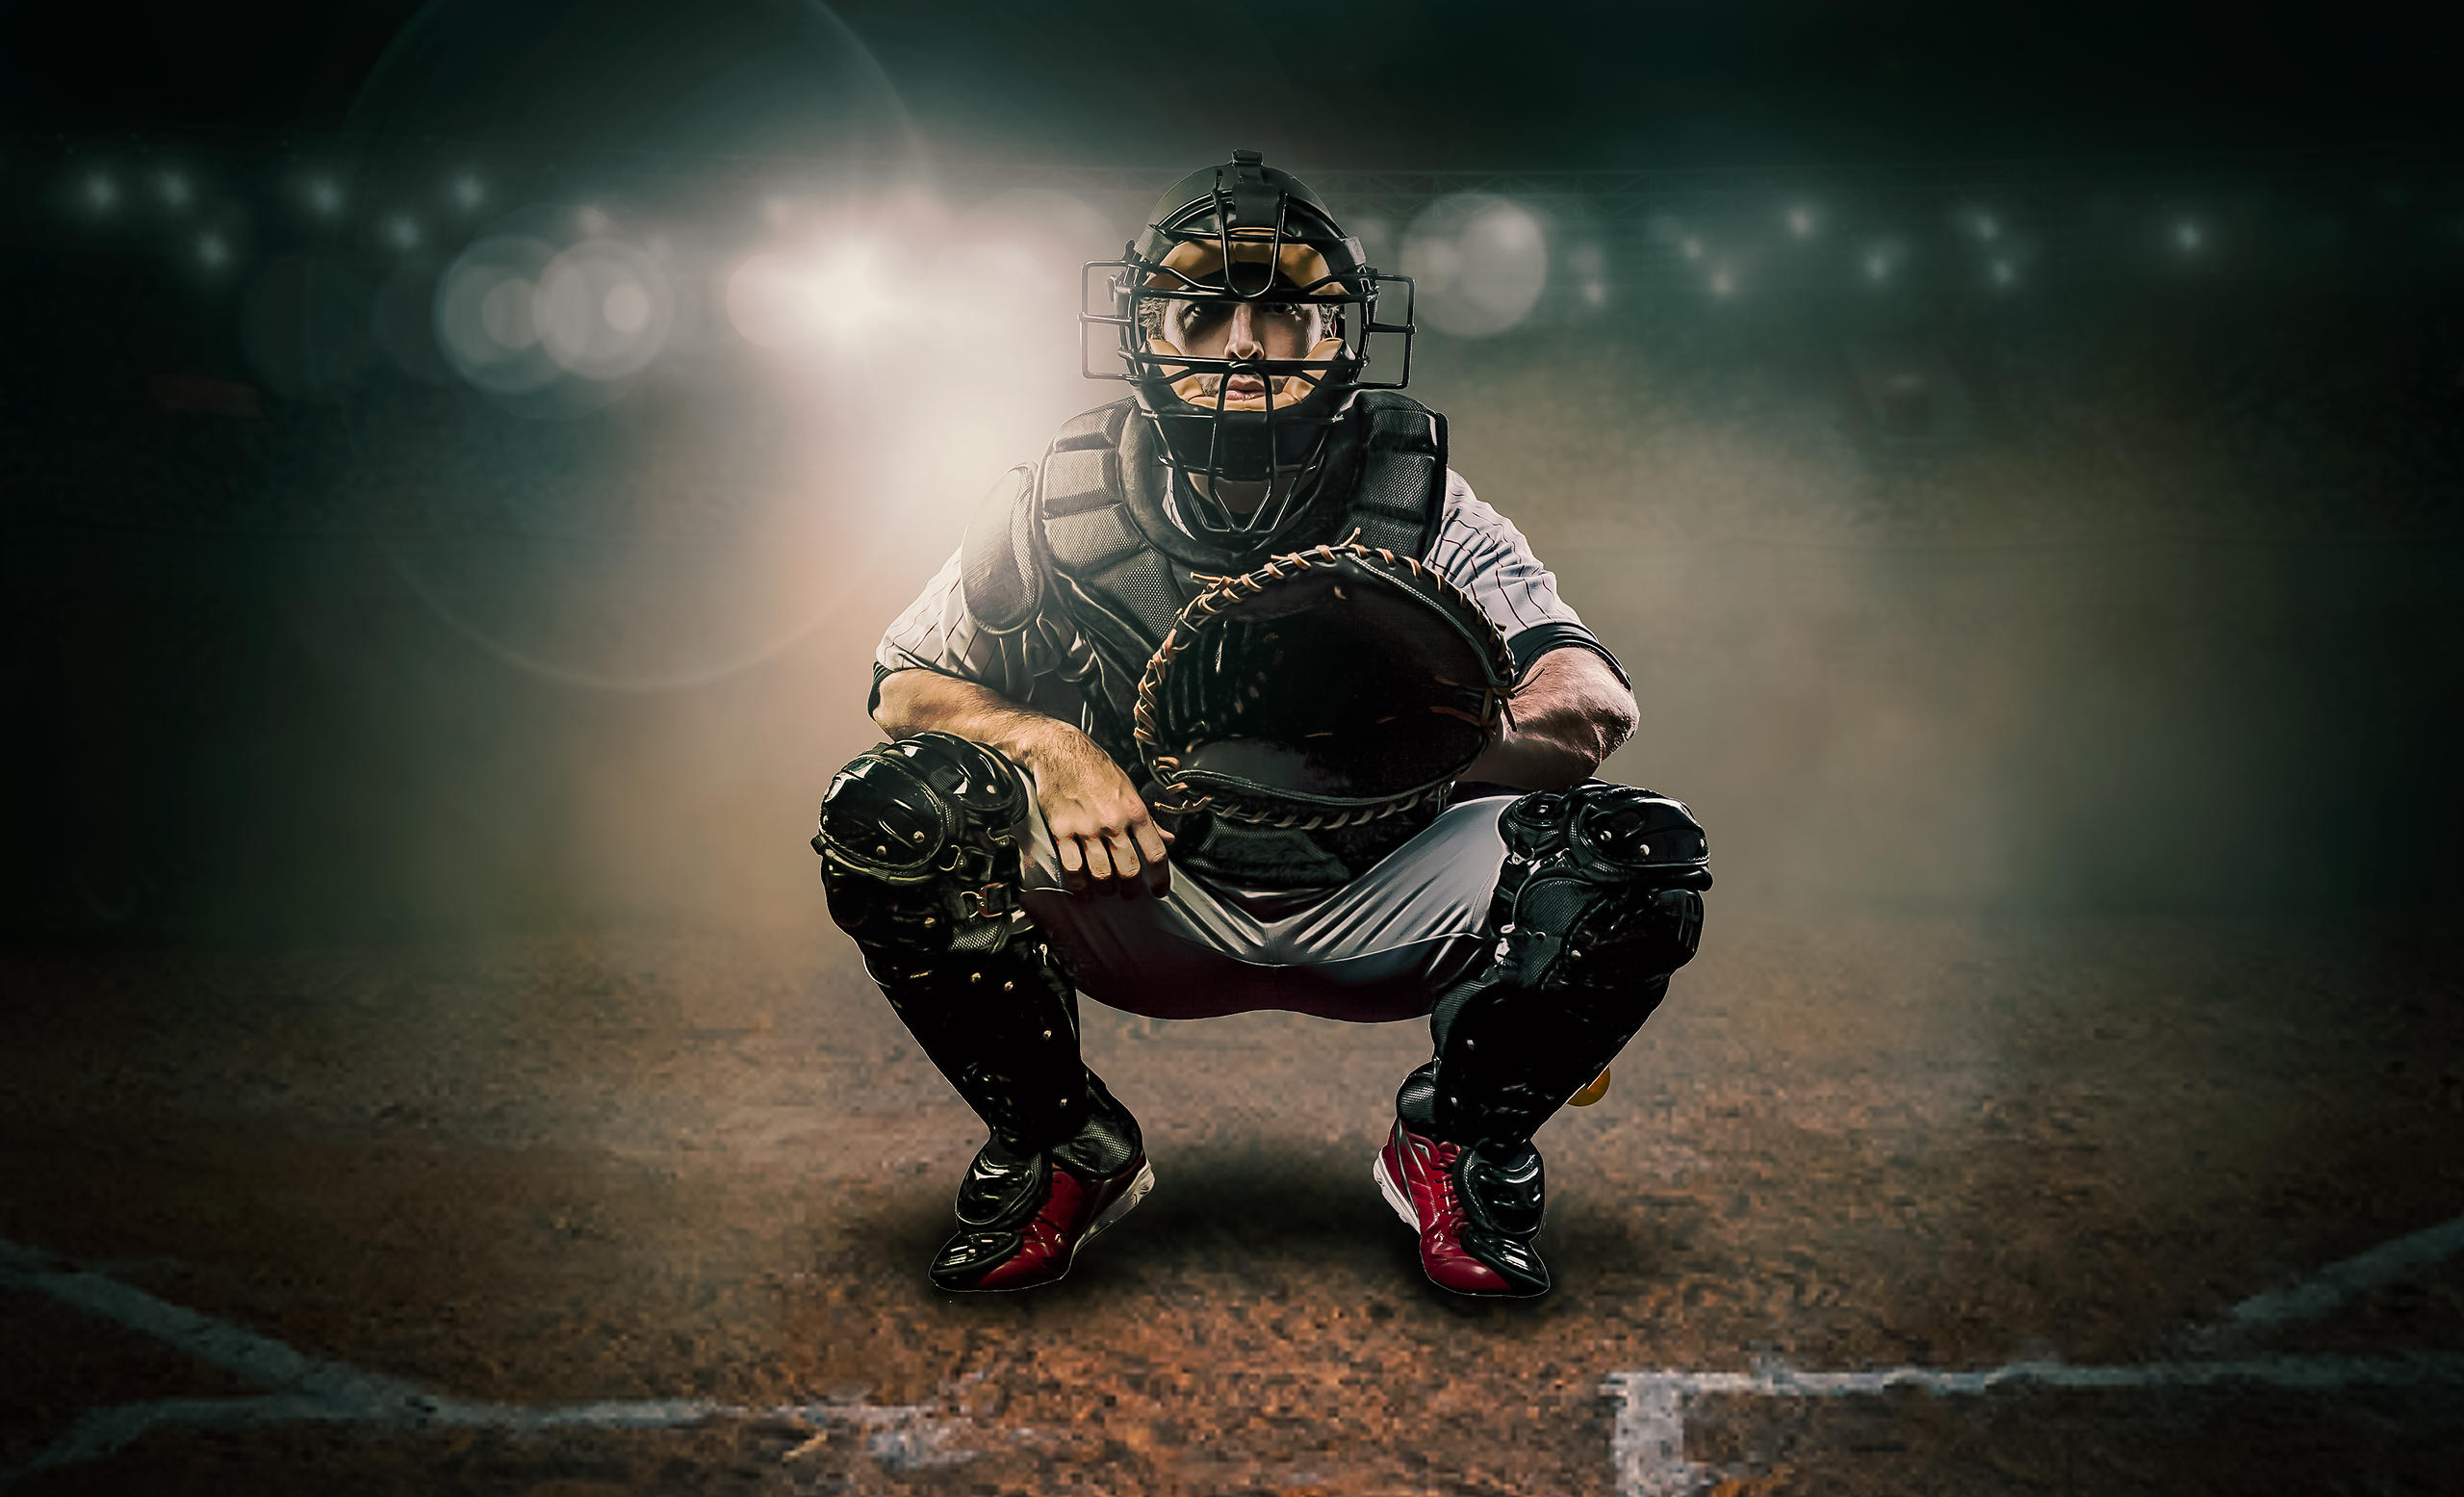 Baseball_Backcatcher_6.18